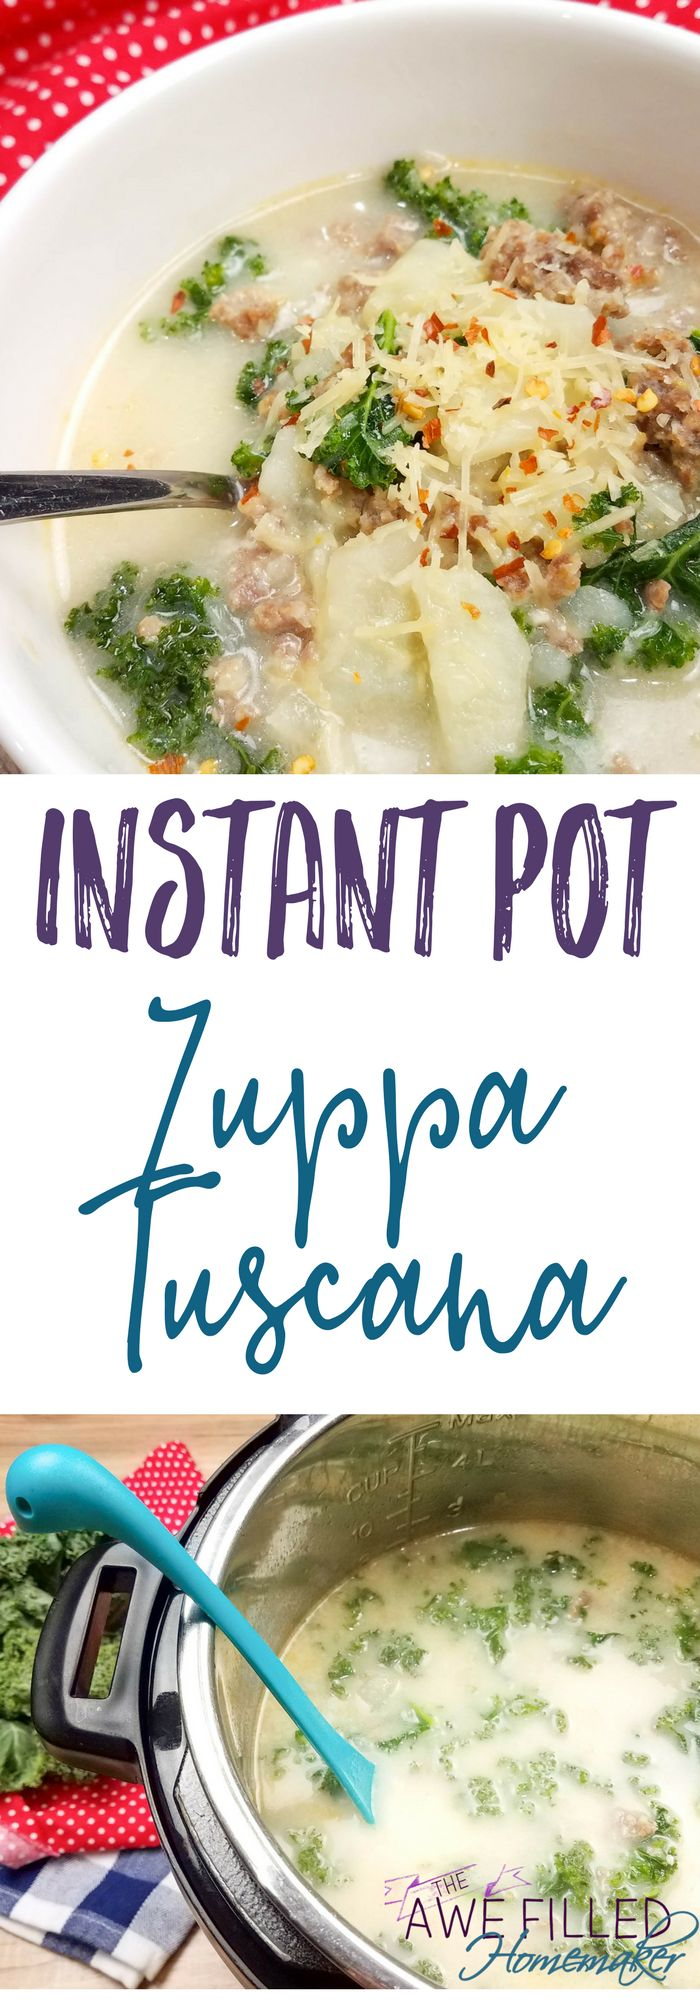 I love the warm comfort of Zuppa Tuscana from Olive Garden, so I had to try my hand at my own version in the instant pot! This copycat Zuppa Tusana is so good!